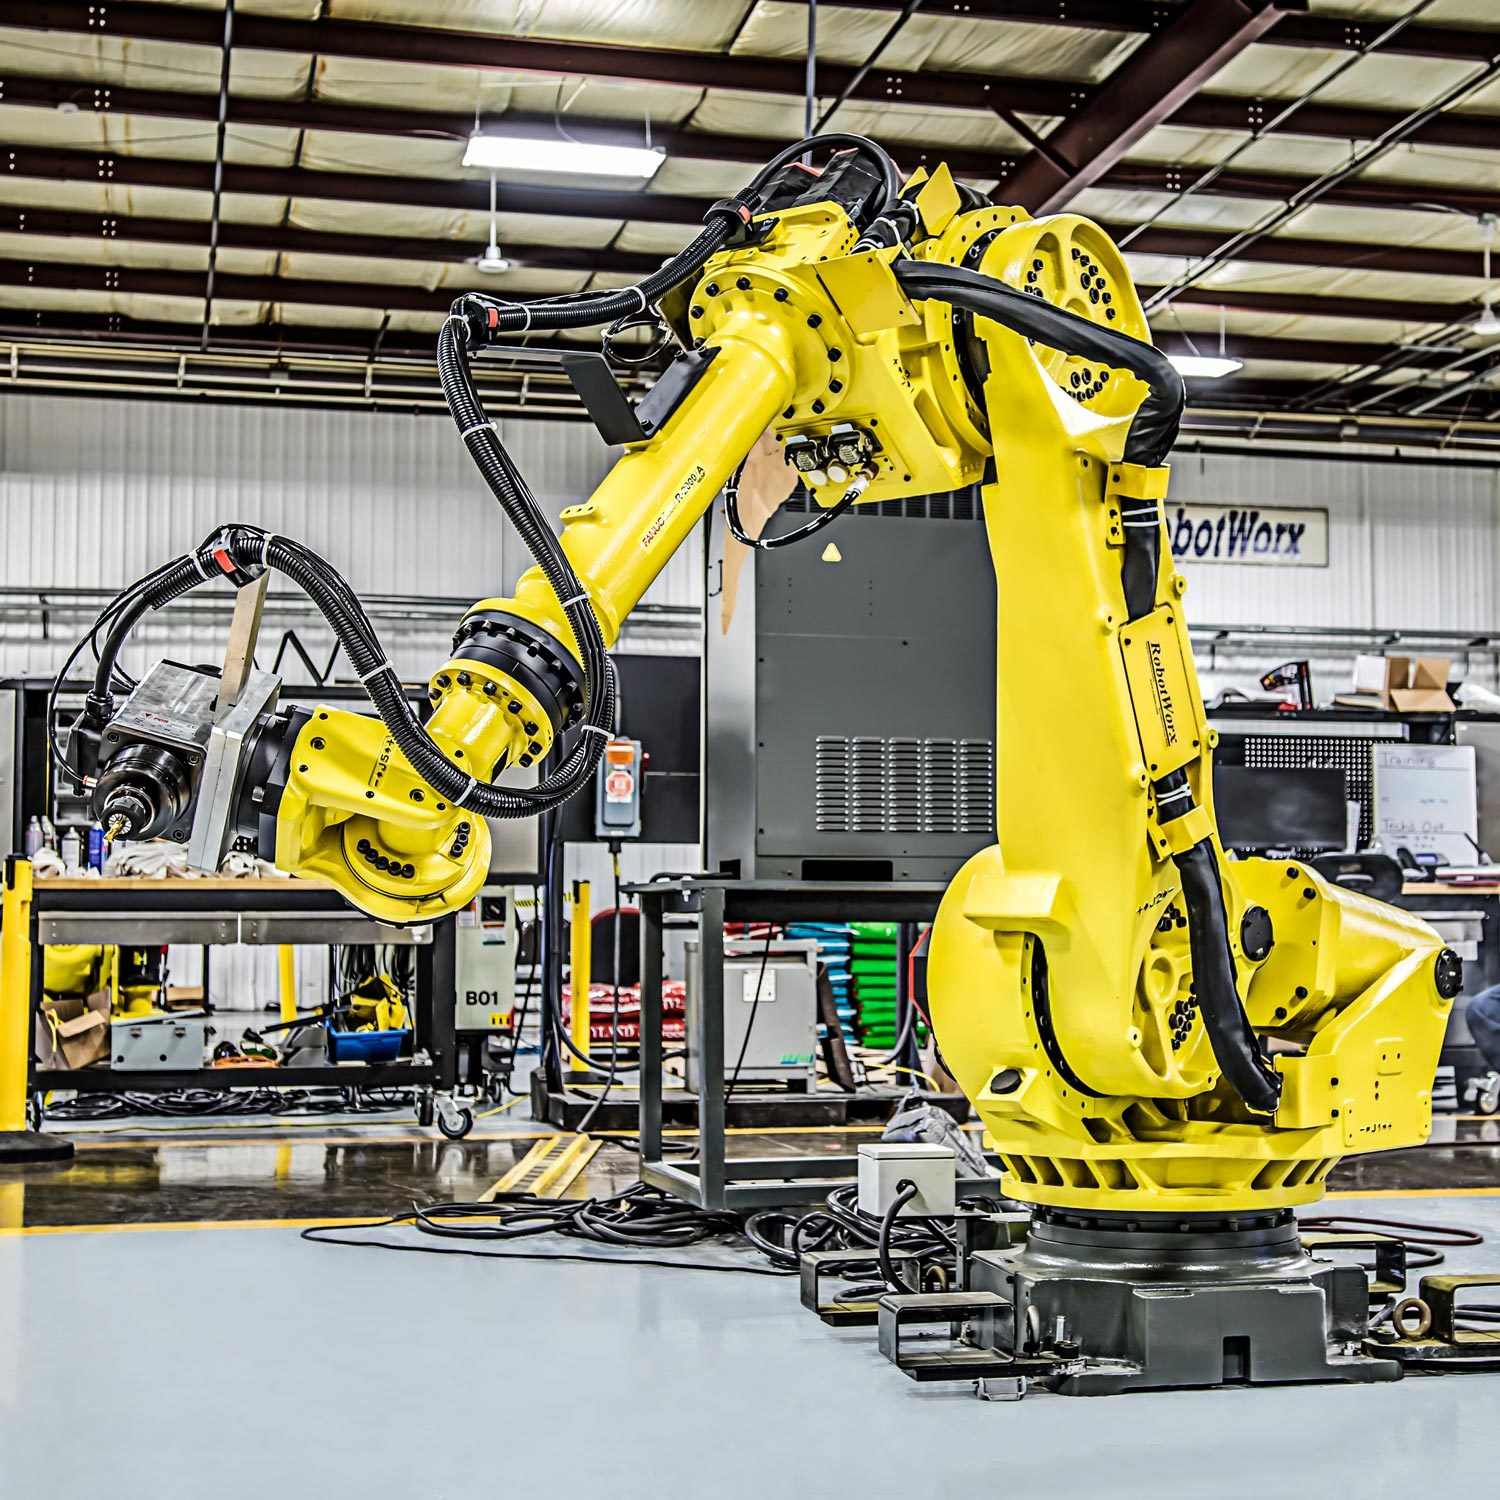 RobotWorx - The Accuracy of the FANUC R-2000iA/165F